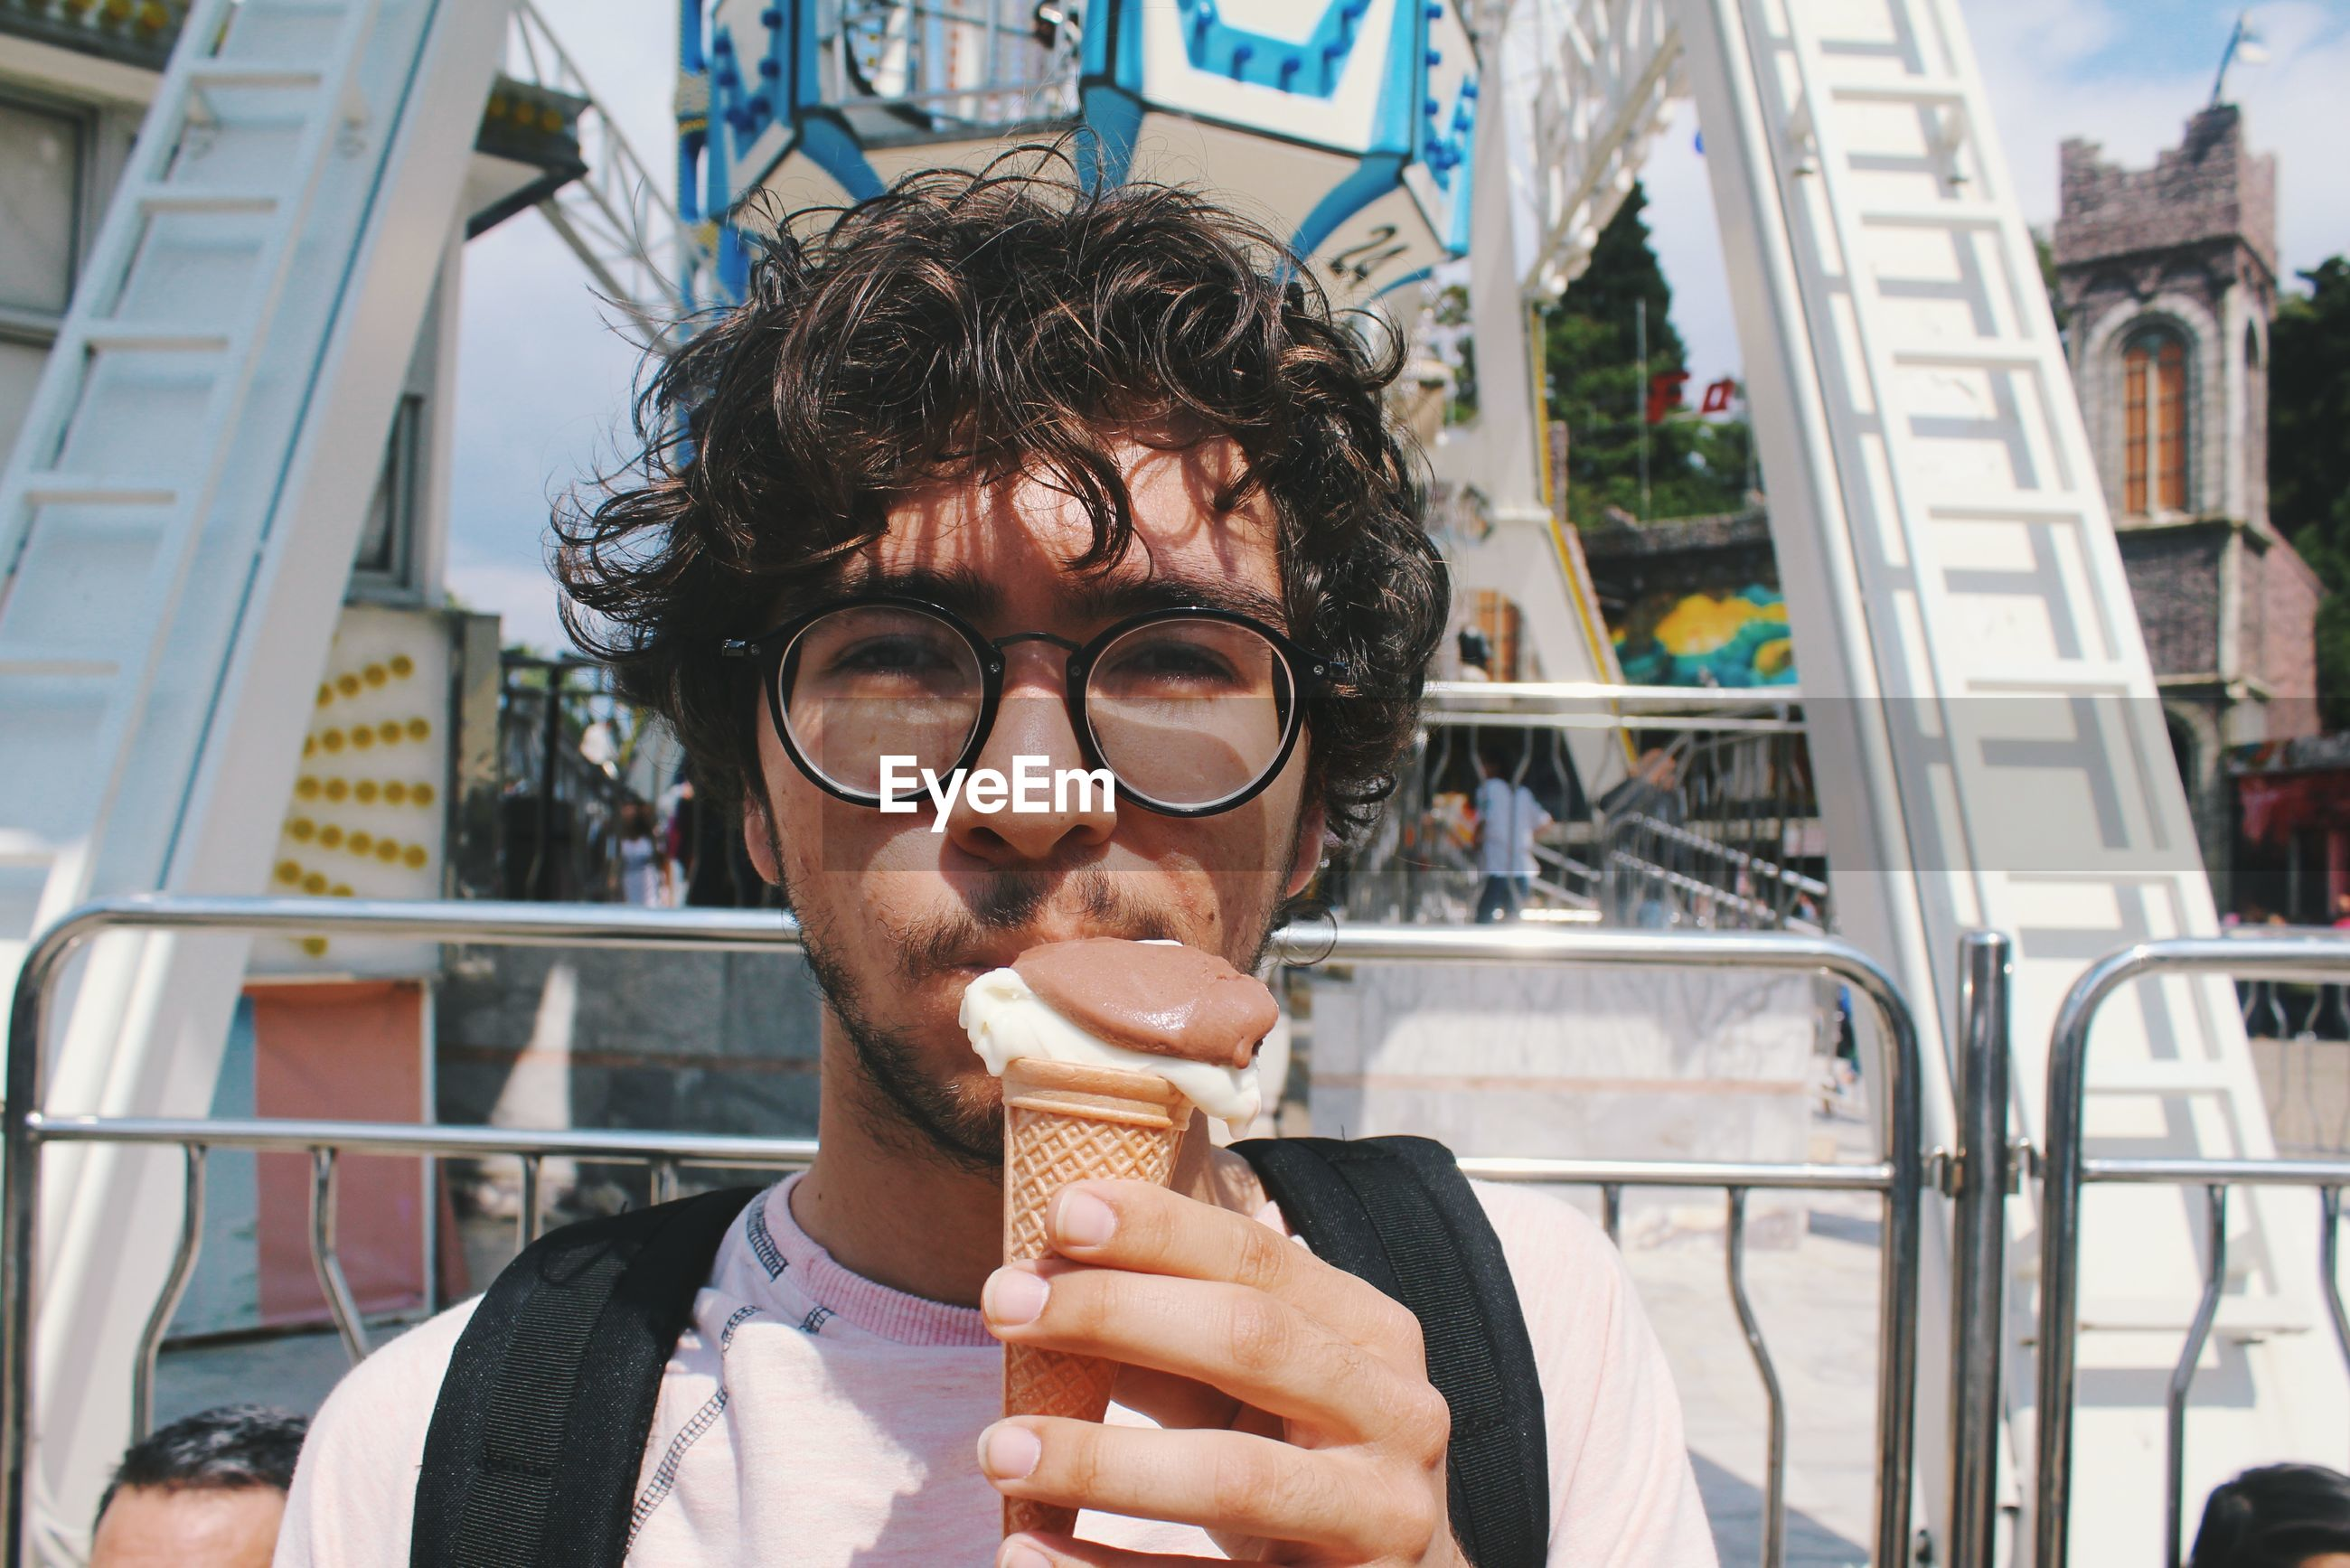 Portrait of young man eating ice cream cone